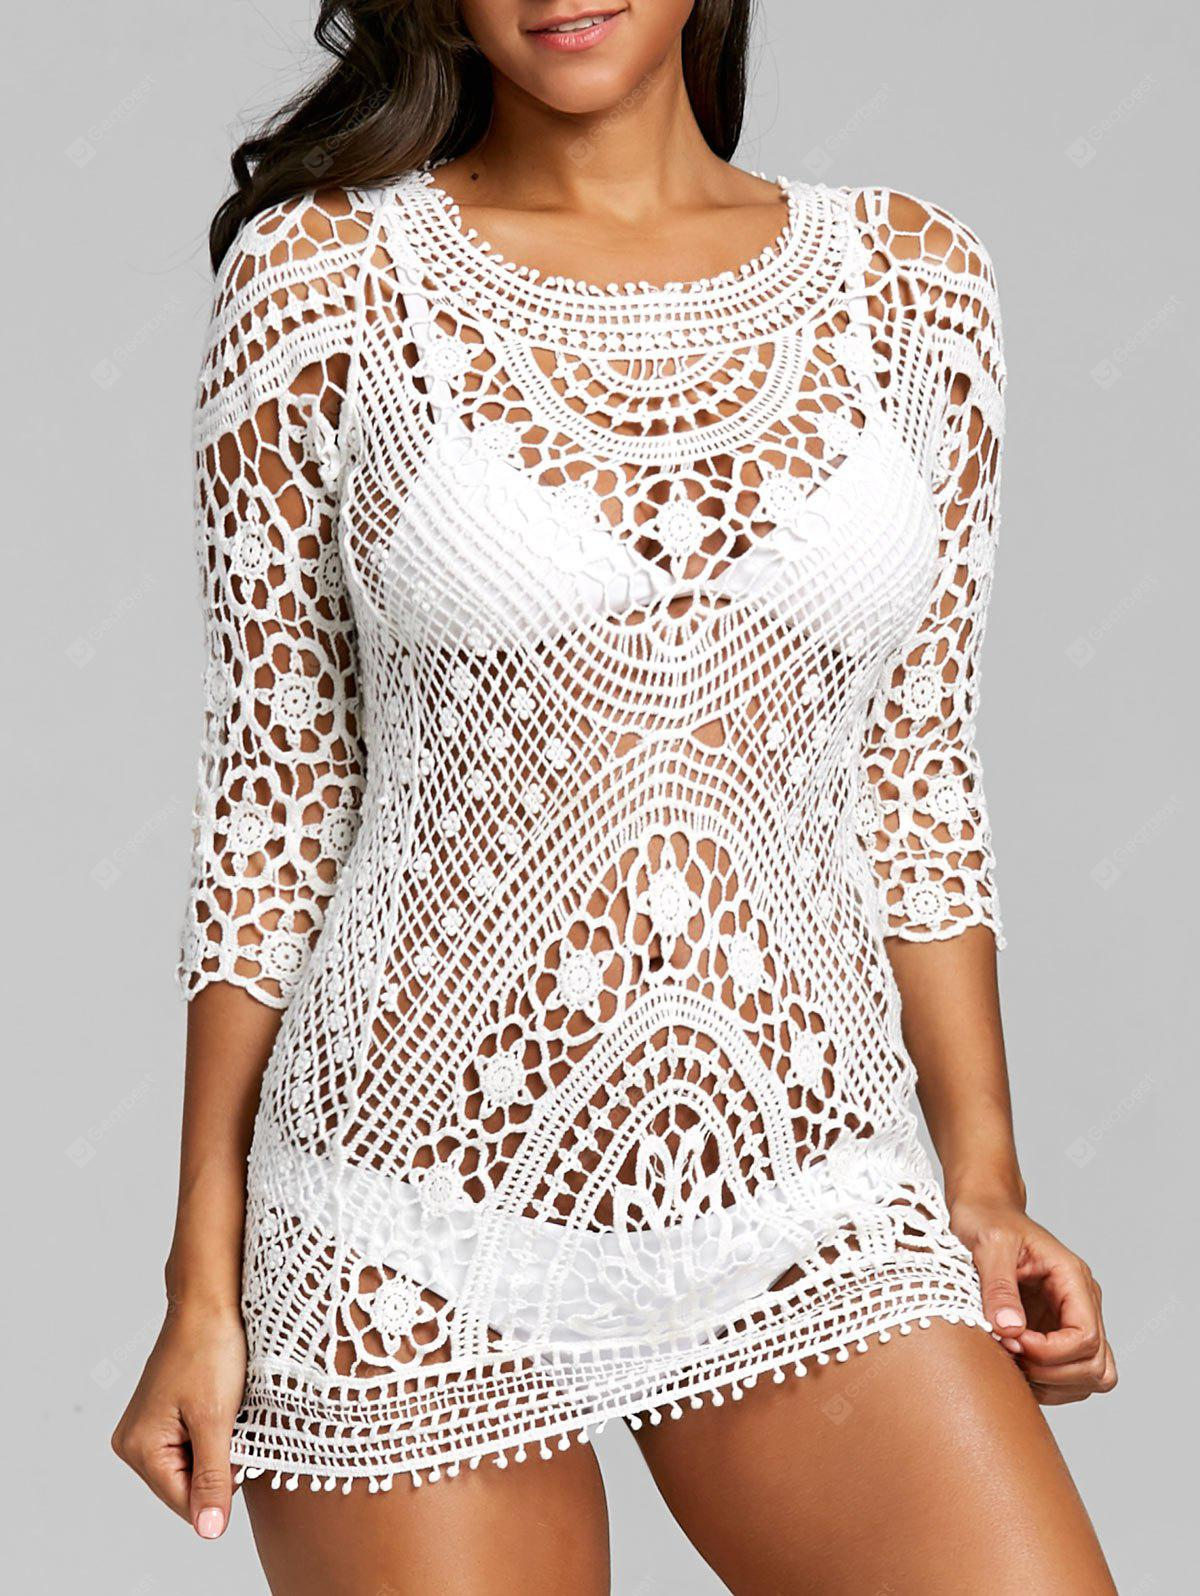 Hollow Out Crochet Flower Lace Cover Up